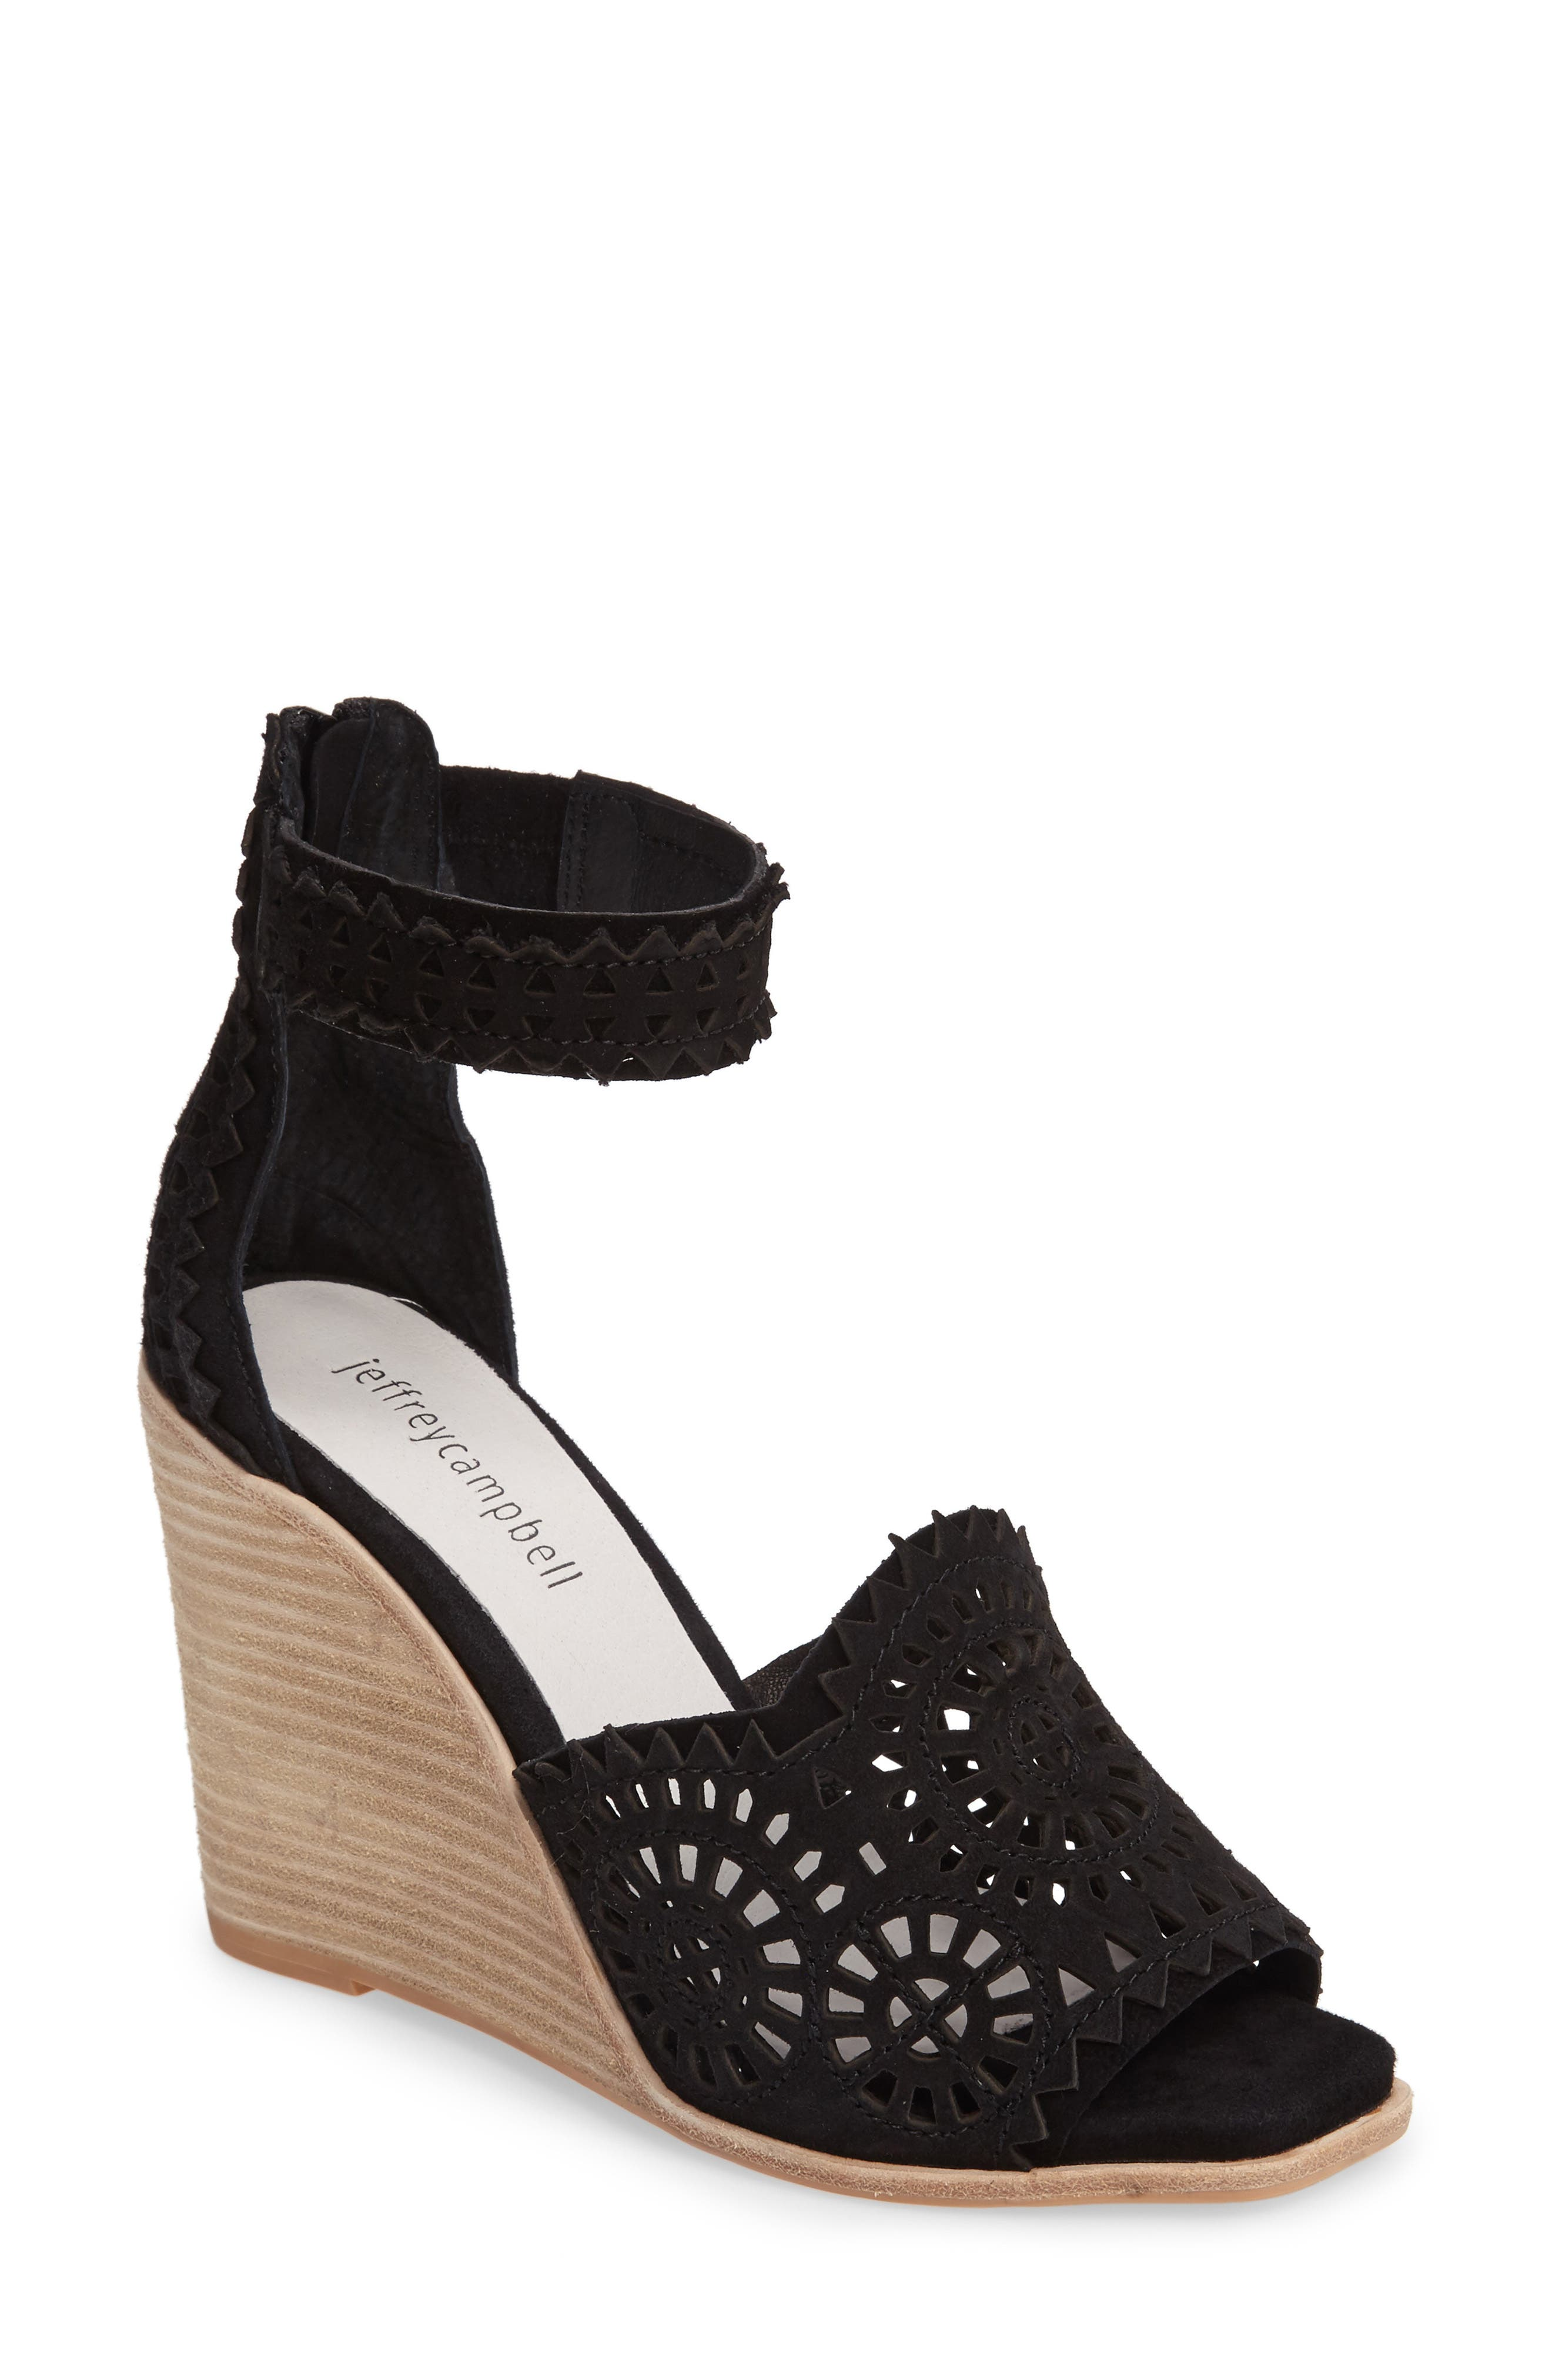 Alternate Image 1 Selected - Jeffrey Campbell Del Sol Wedge Sandal (Women)